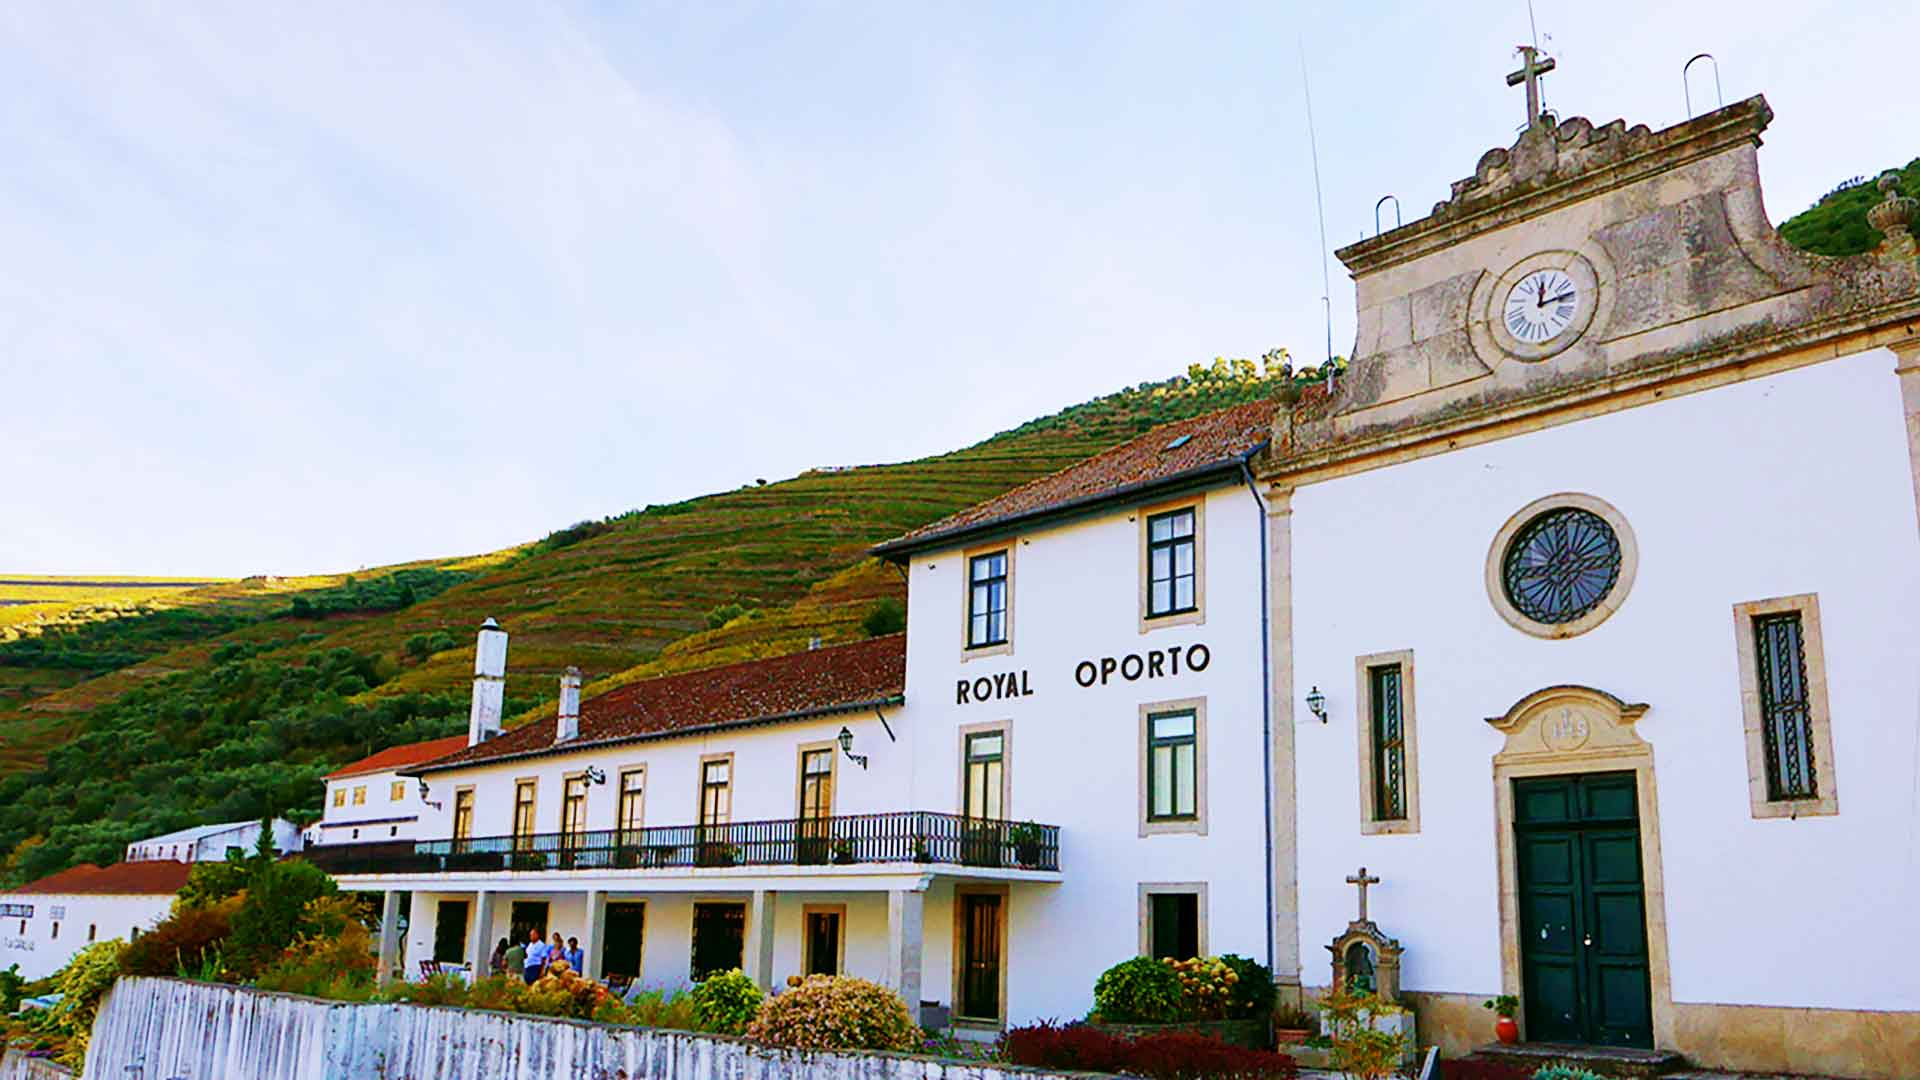 Building of Quinta das Carvalhas